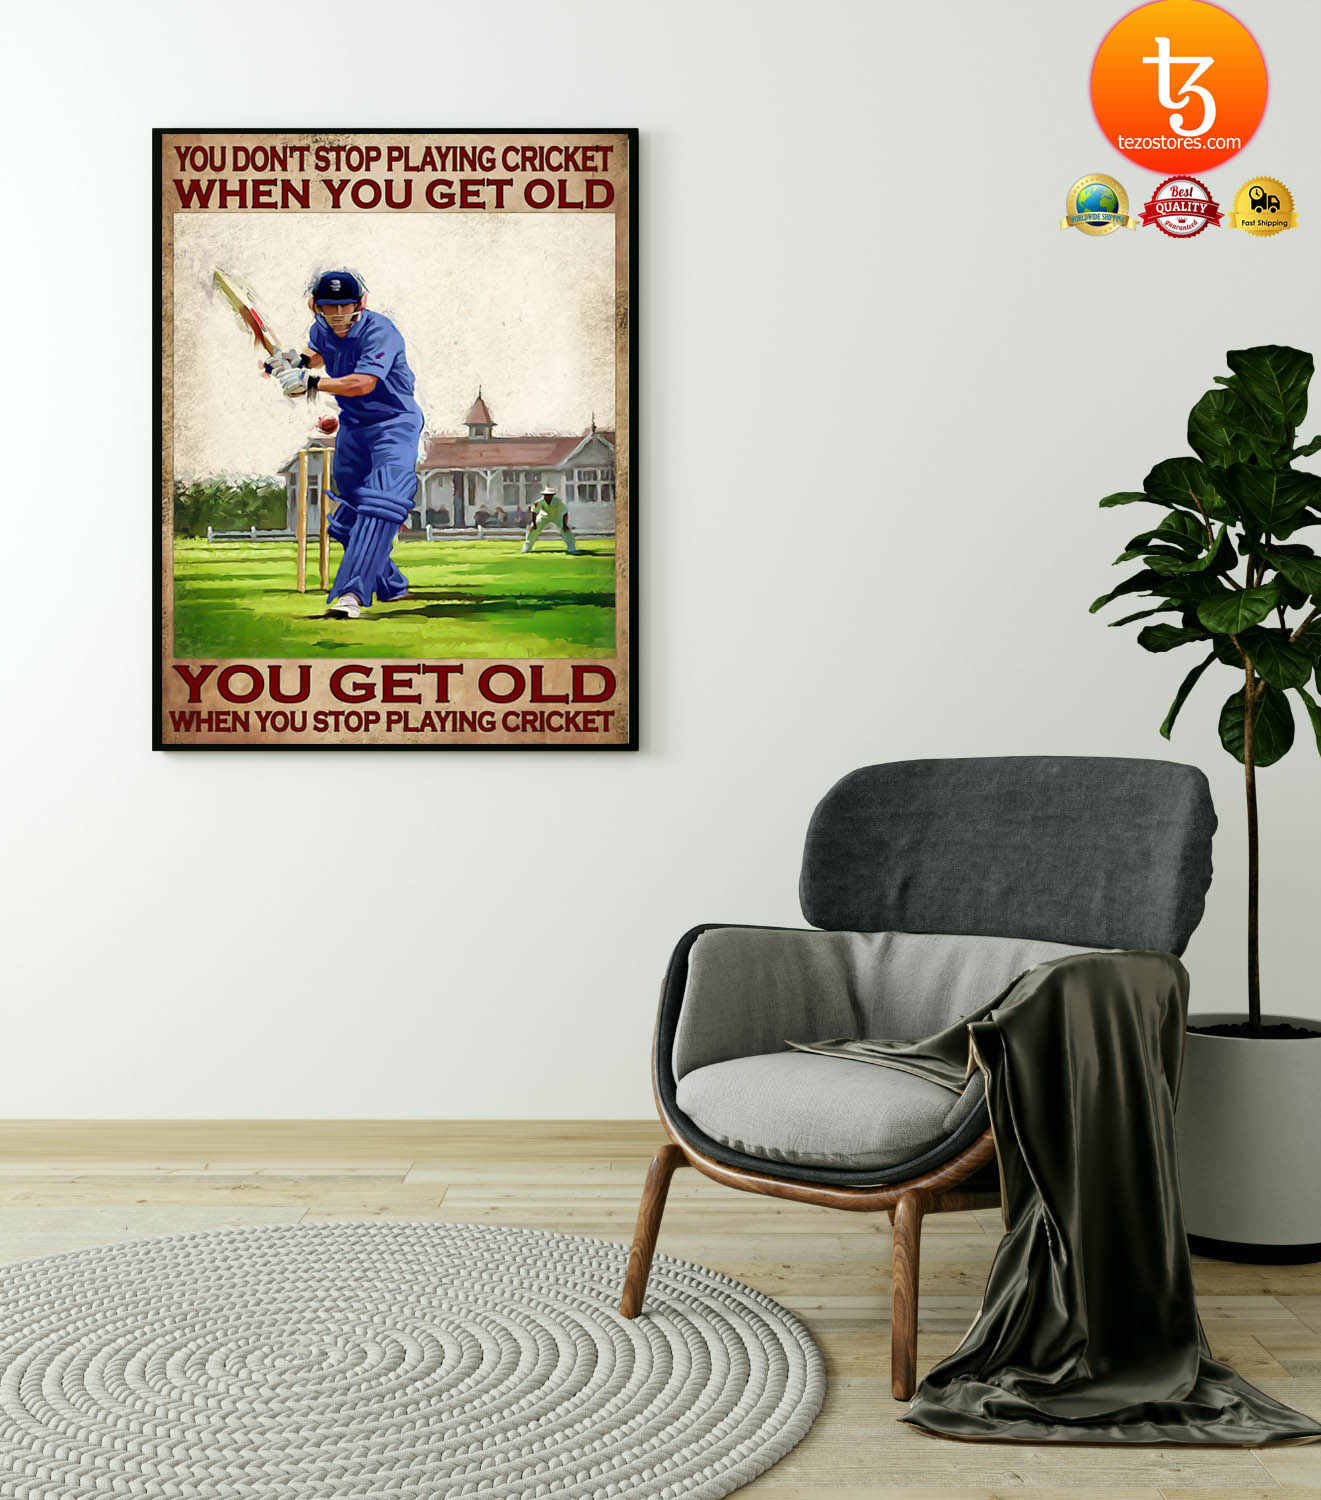 You don't stop playing cricket when you get old poster 19